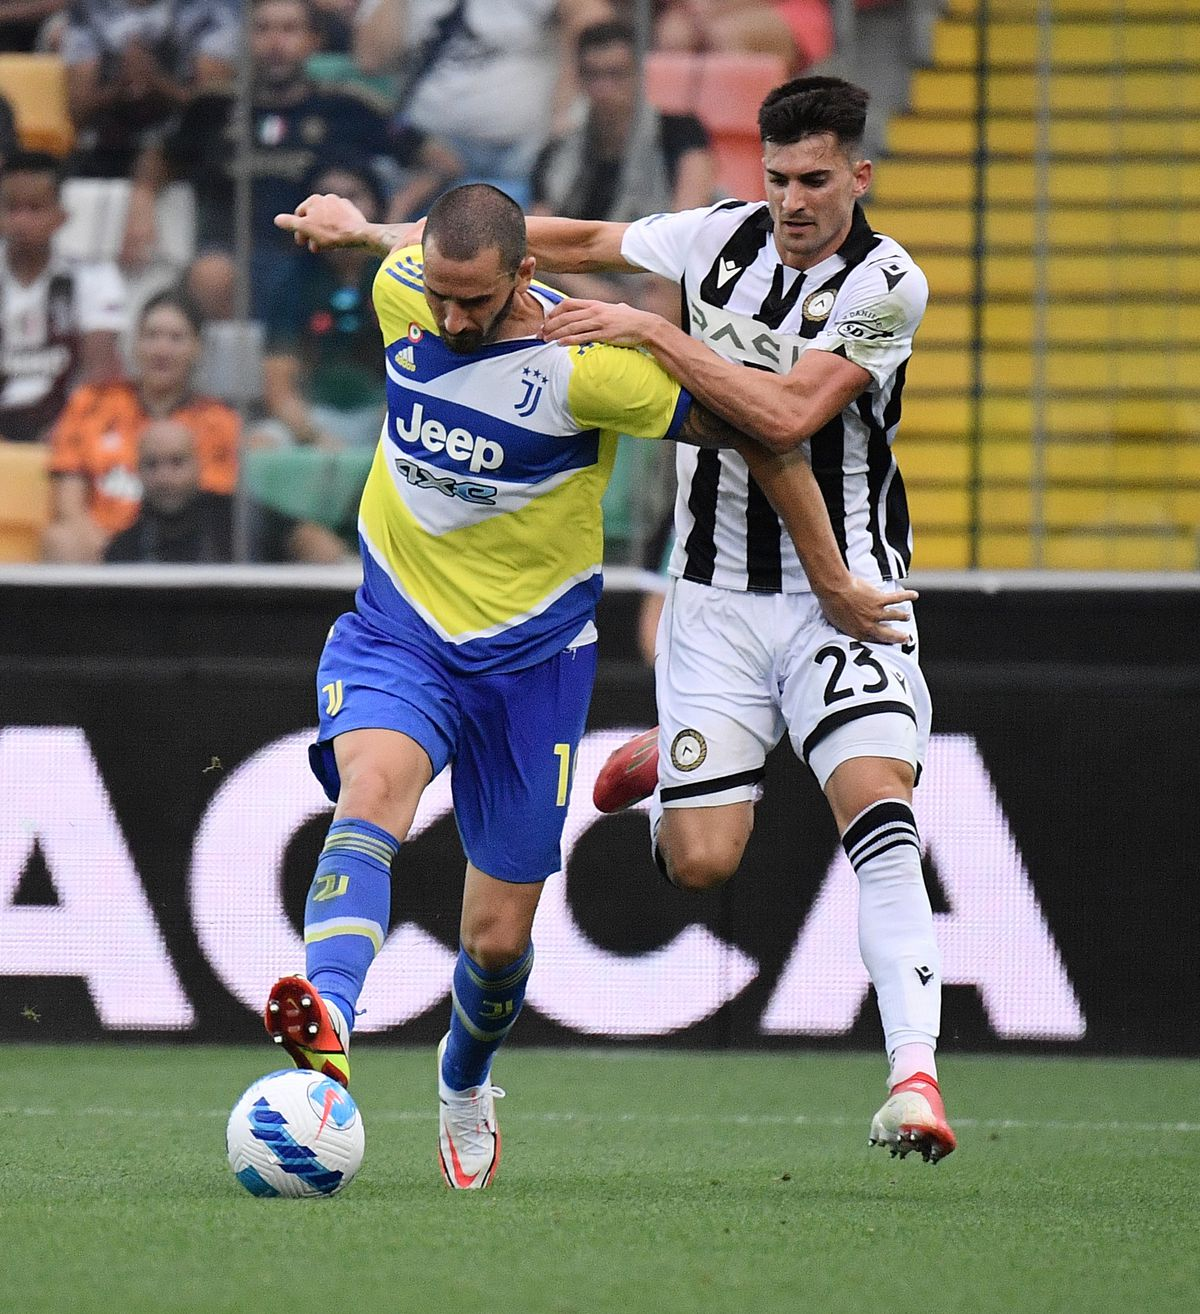 ITALY-UDINE-FOOTBALL-SERIE A-JUVENTUS VS UDINESE